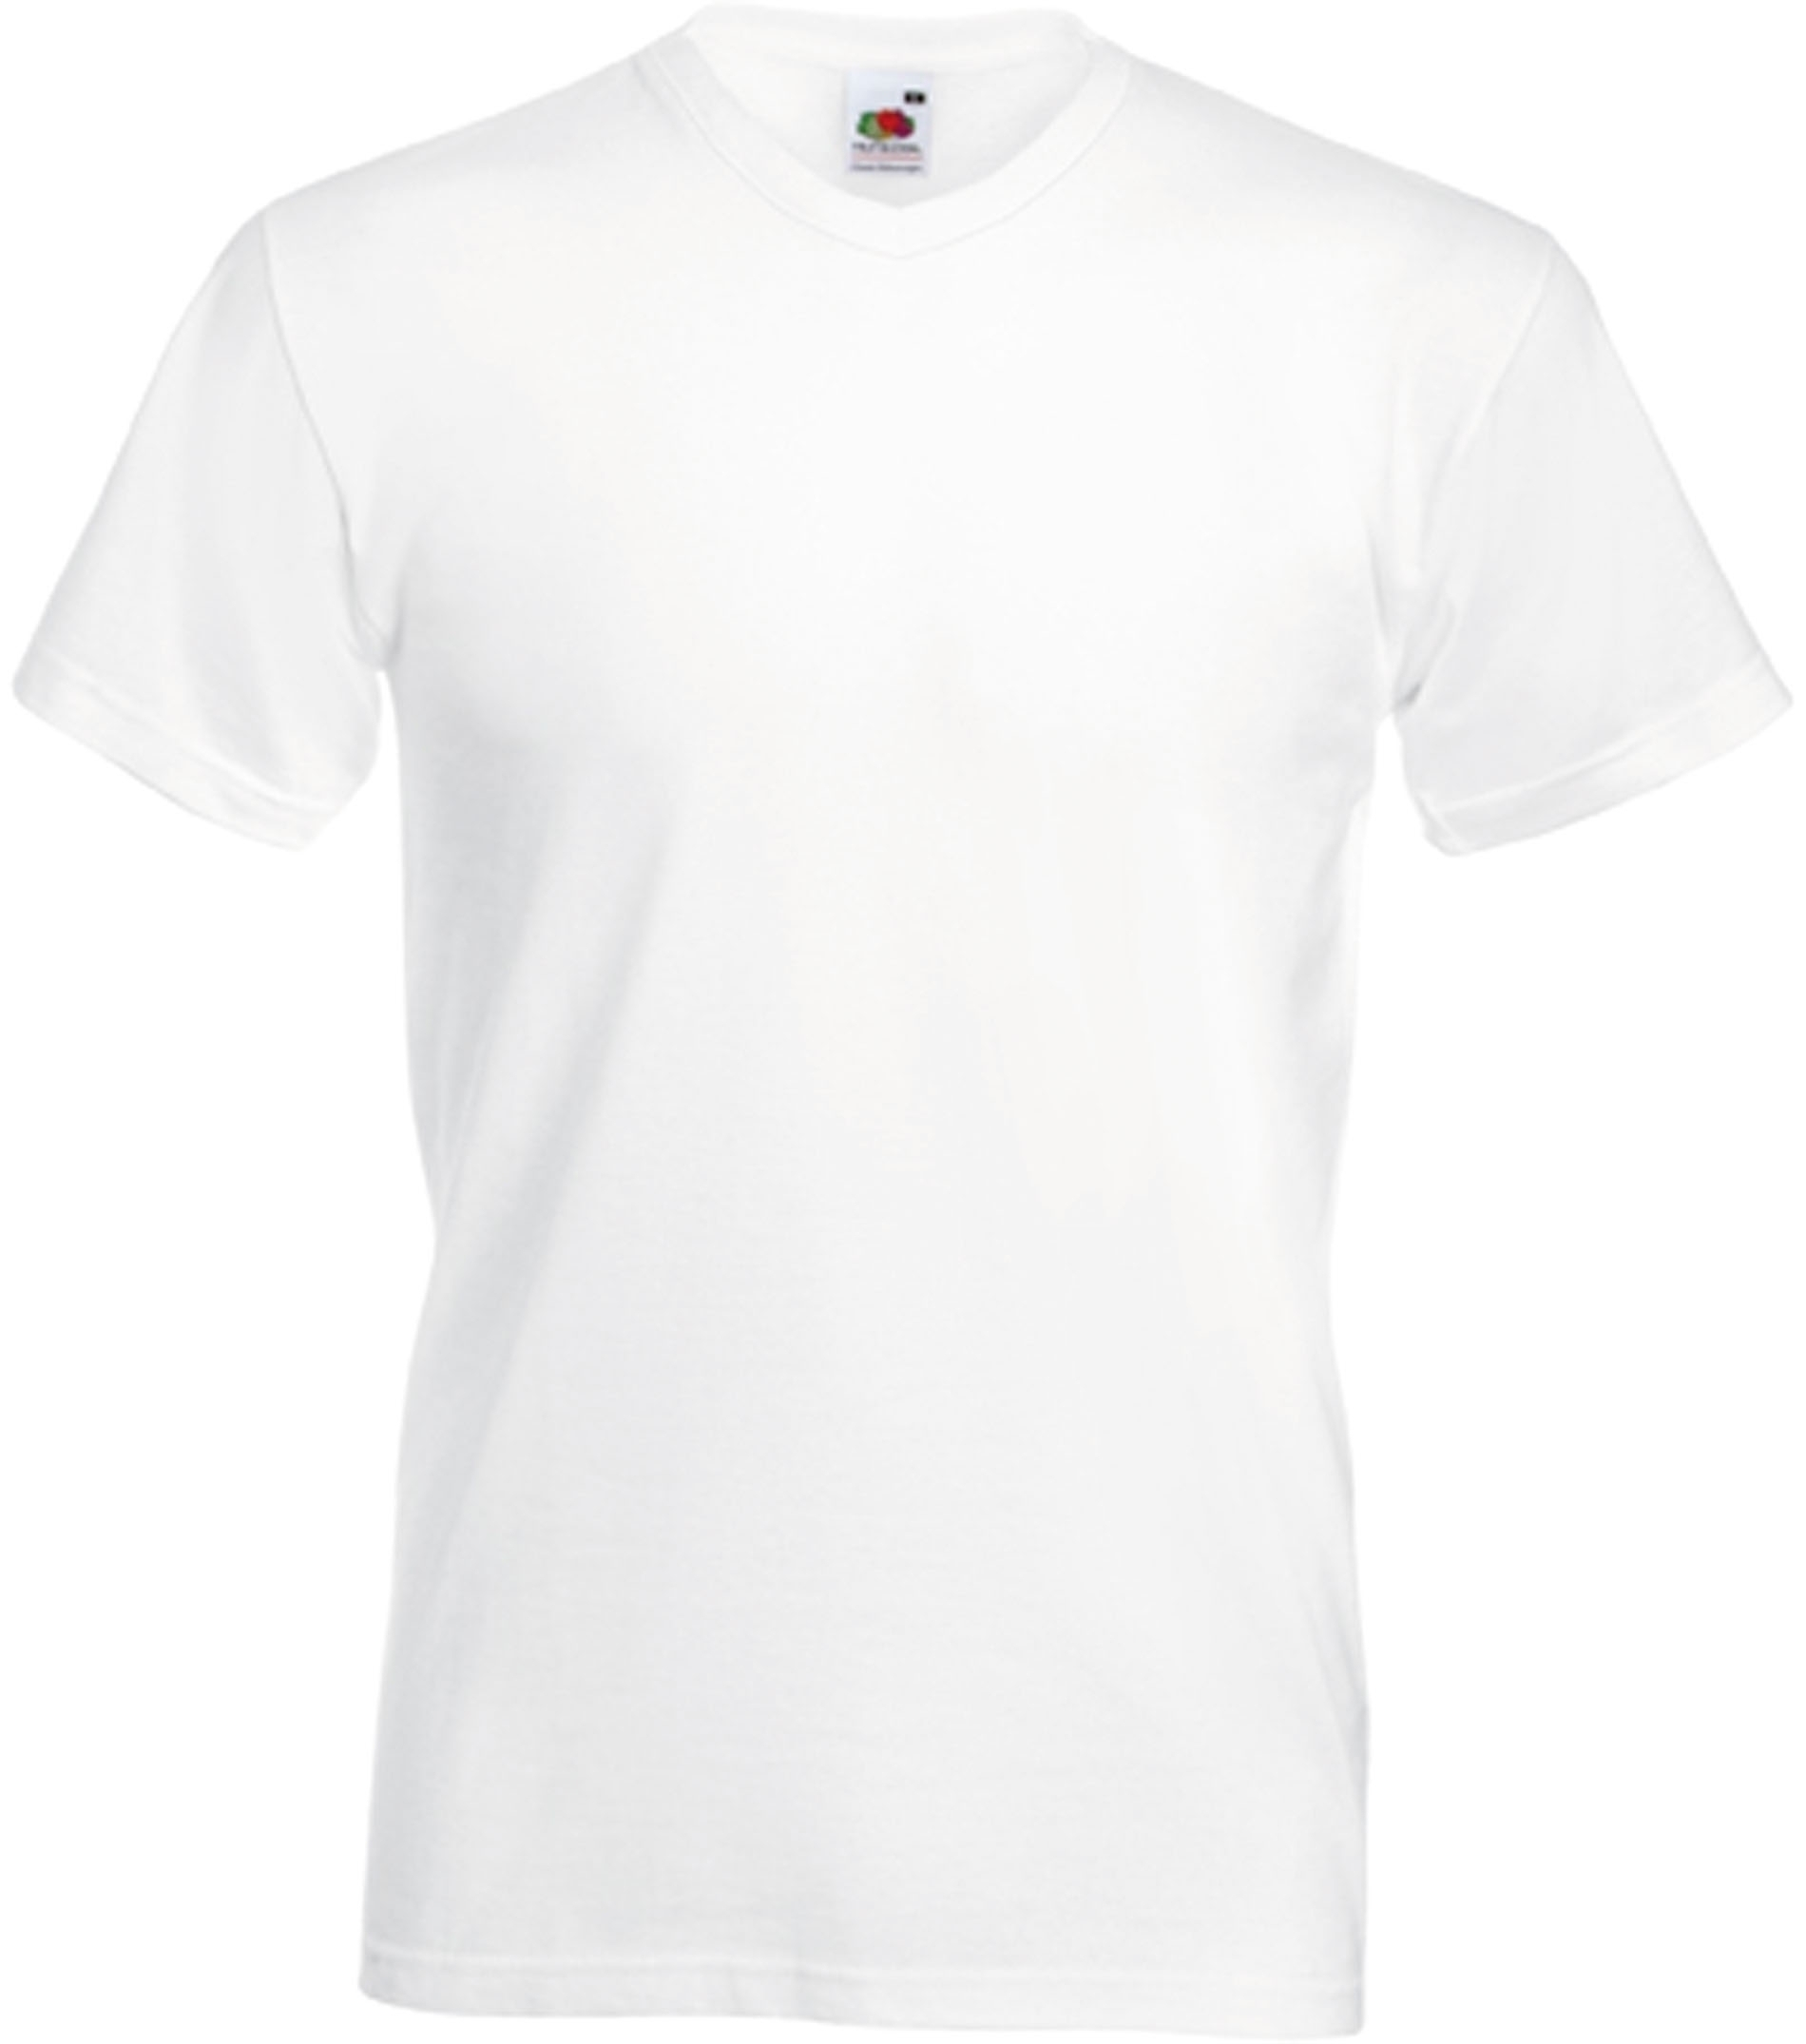 438697bffb514 T-SHIRT HOMME COL V VALUEWEIGHT (61-066-0) White Blanc ·  images stories virtuemart tt2016 PS SC22V WHITE